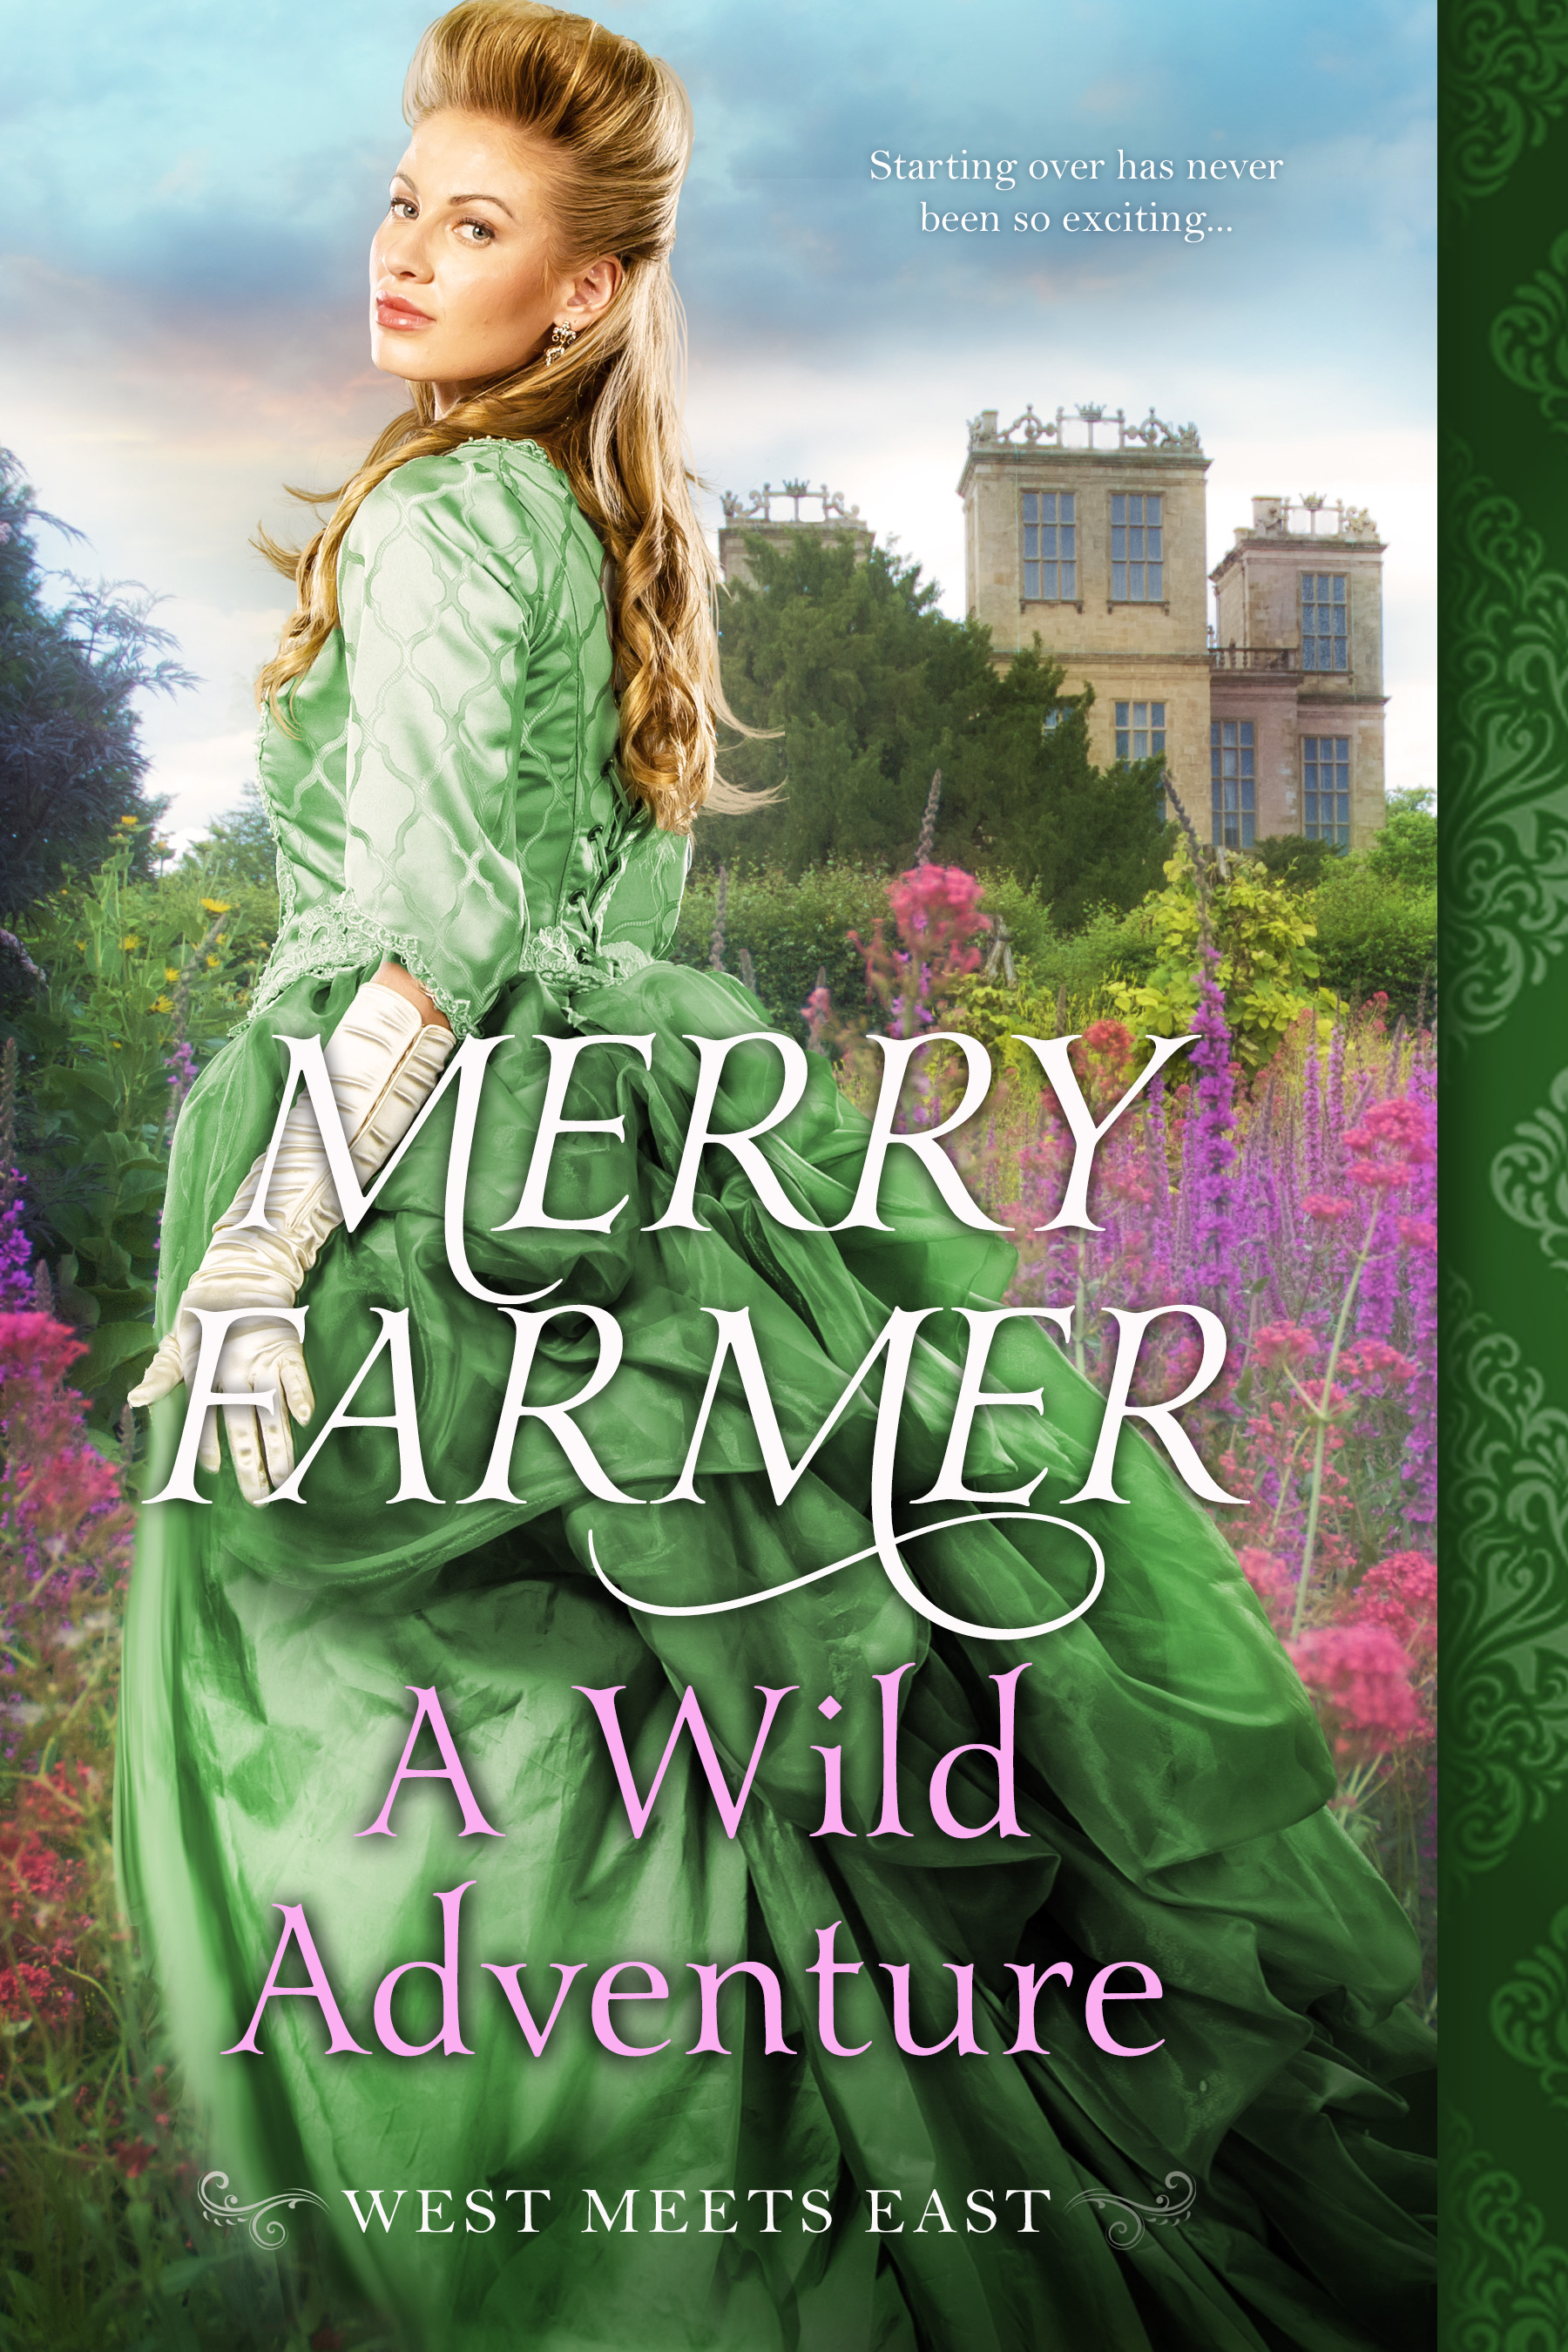 A Wild Adventure (Book 4) - After years of reluctantly living the wild life in Haskell, Wyoming, all Rose Rawlins wants is to settle down into a quiet position as a maid for the Bond family in Brynthwaite, England. She takes her position as nurse for charming and irascible Mr. Bond, and confidant of adventurous Miss Elaine Bond, seriously, vowing that nothing will get in the way of her duty to her new friends.Until handsome and tempting Dr. Isaac Newsome comes along.Widower Isaac Newsome doesn't feel as though he has anything to offer a woman, but from the first moment he lays eyes on Rose, that belief is challenged. Rose's refreshing, American ways breathe new life into what was becoming a stale existence. But in spite of the fiery attraction between them, Rose is holding something back.It takes a trio of mischievous young men from Brynthwaite Municipal Orphanage, all of Mr. Bond's wiles, a mysterious and regal bookseller, who is also new to town, and a daring boat race to bring Rose and Isaac together, but even then, will a sudden tragedy pull them apart?PLEASE BE ADVISED: Steam Level – Hot